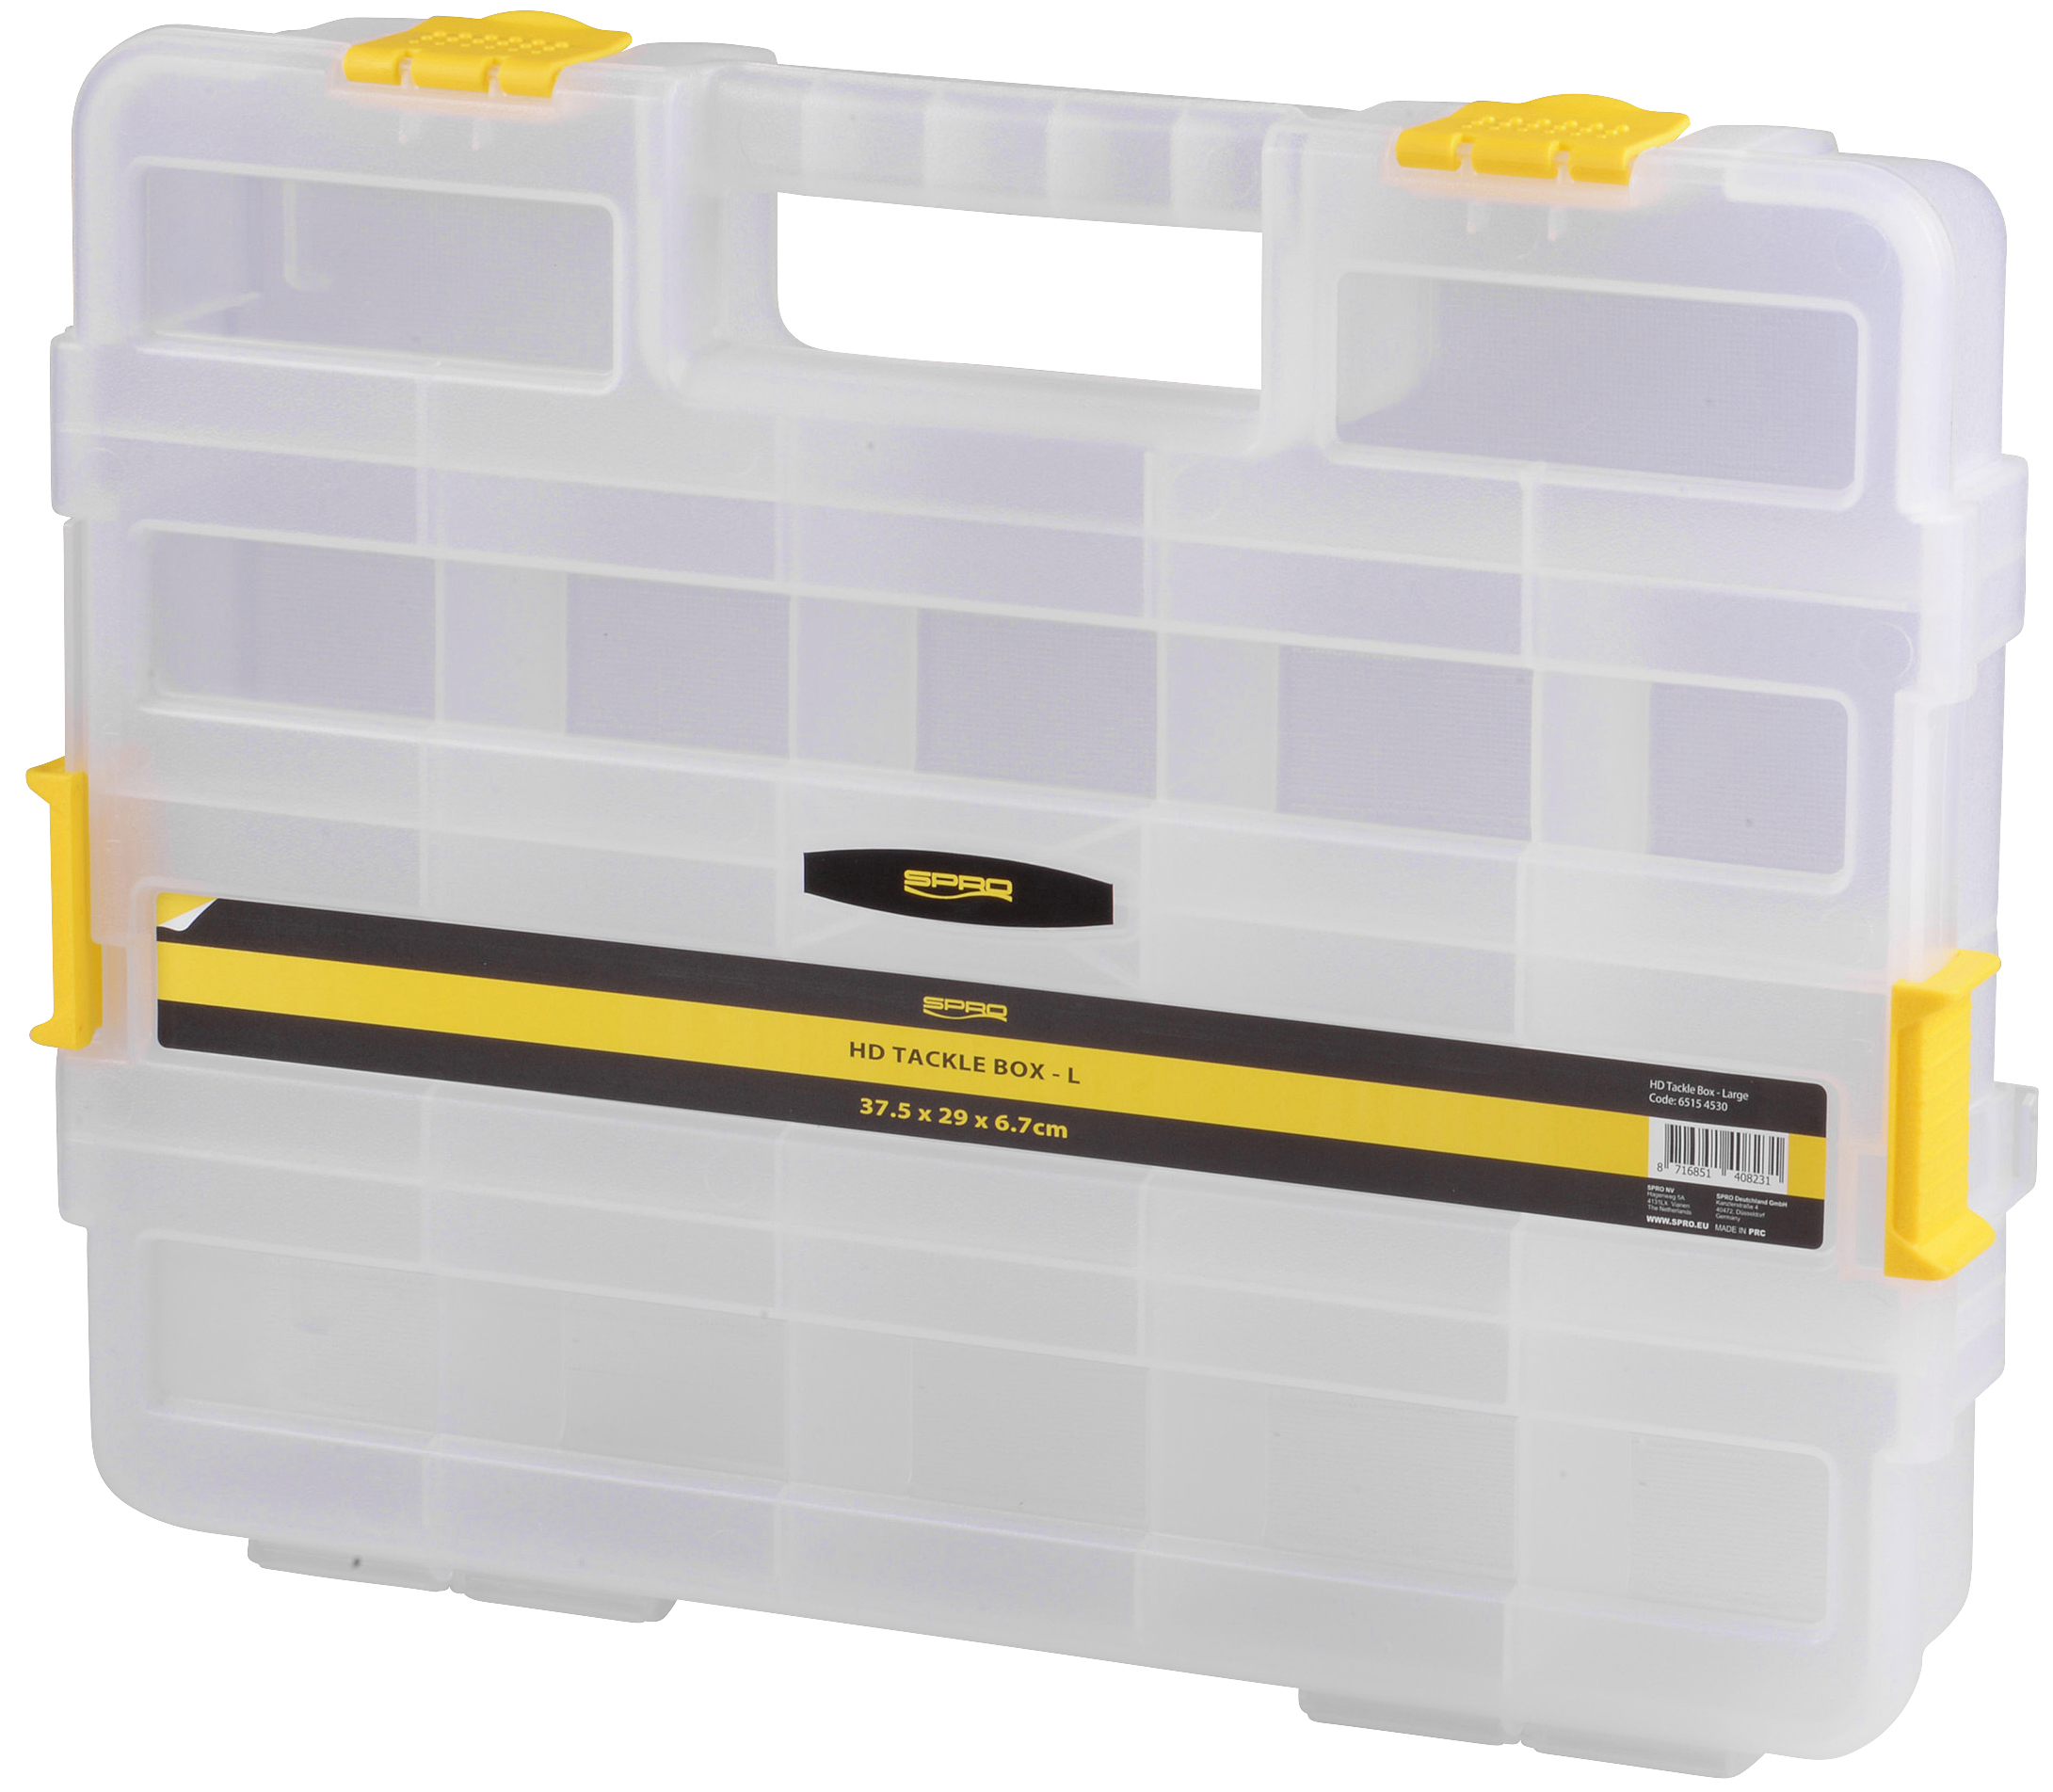 Spro-HD Tackle Box Double Sided 32x27x8cm-1 - Gerlinger.de